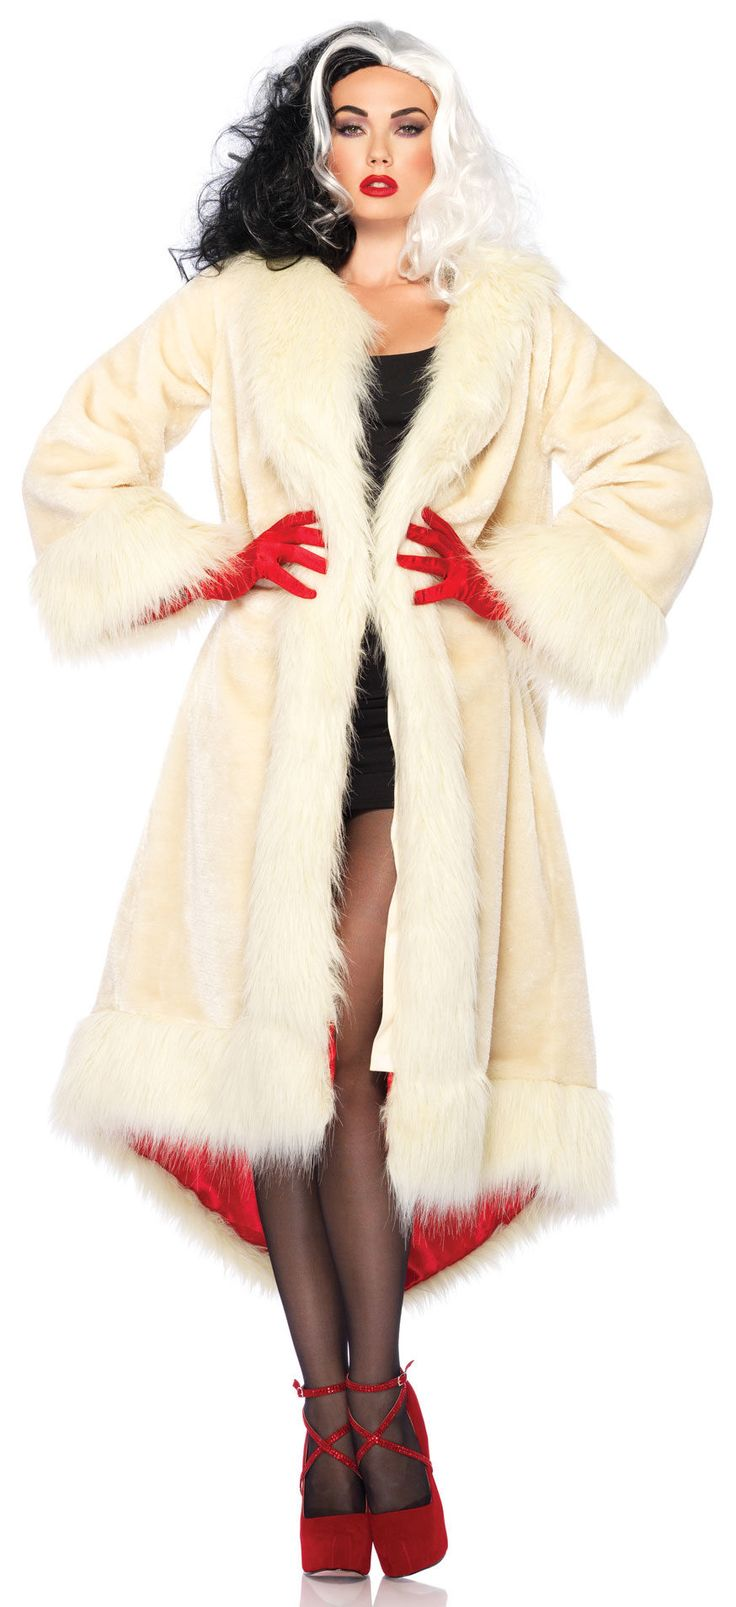 Cruella Deville Coat Villain Adult Costume - Mr. Costumes